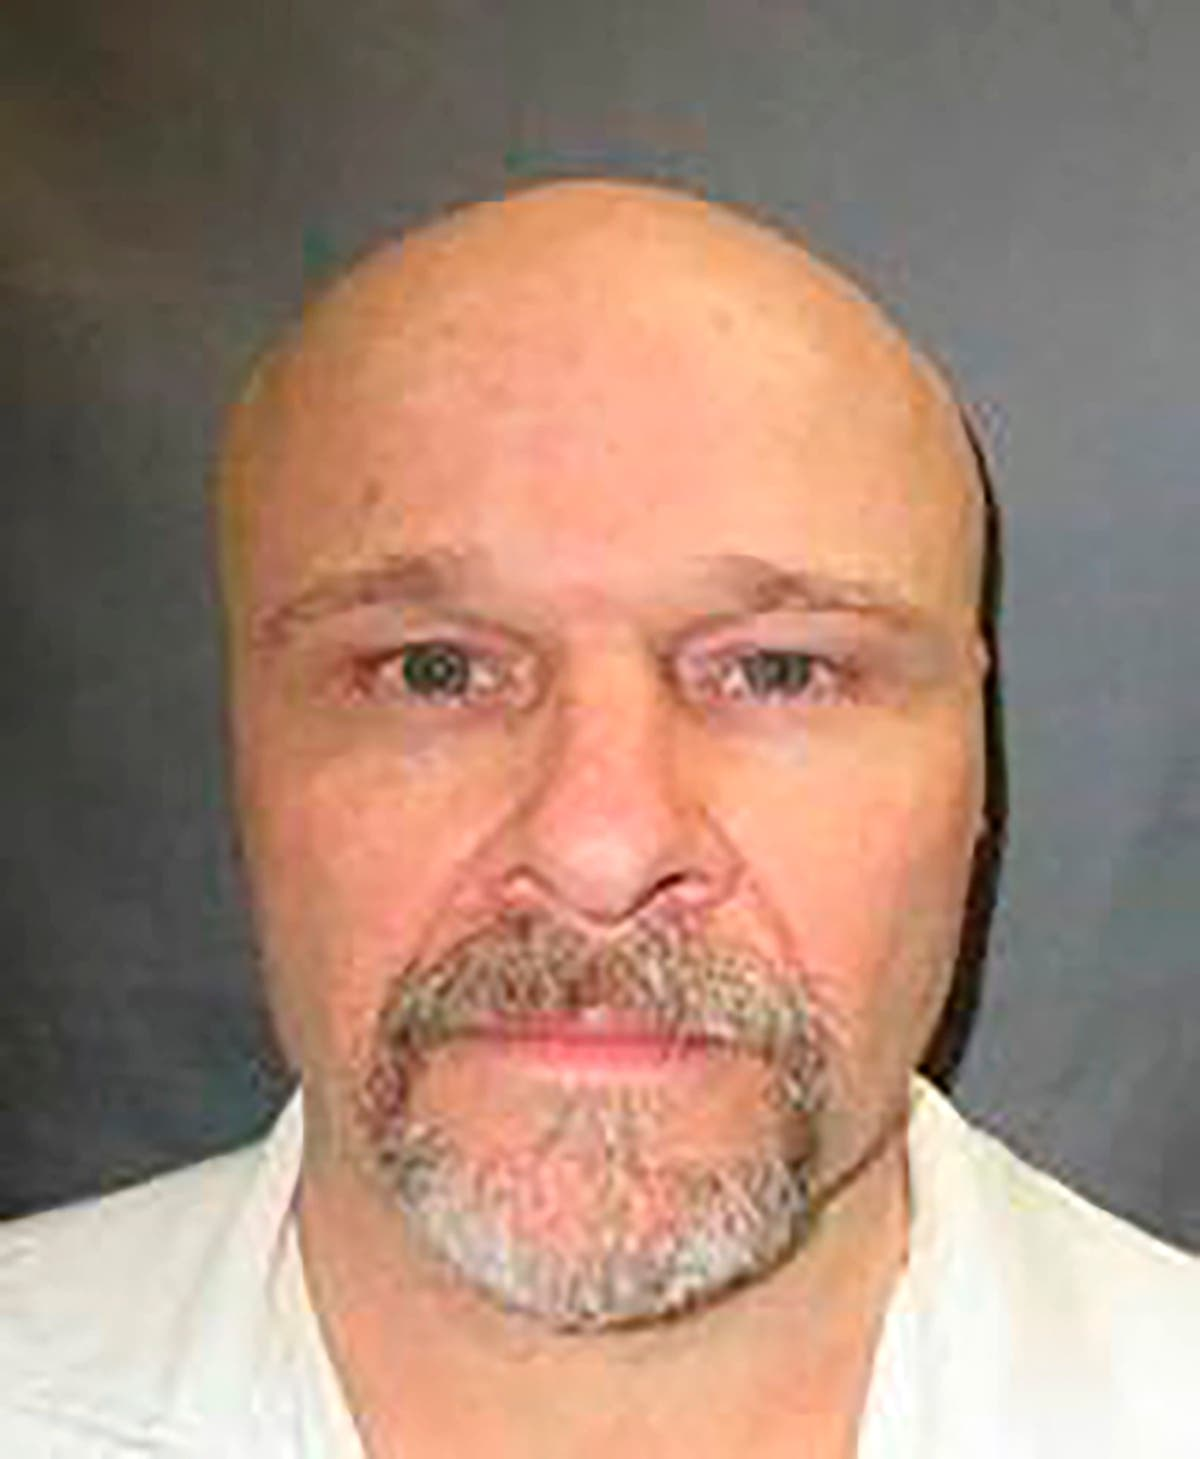 Texas inmate faces execution for fatally stabbing 2 brothers